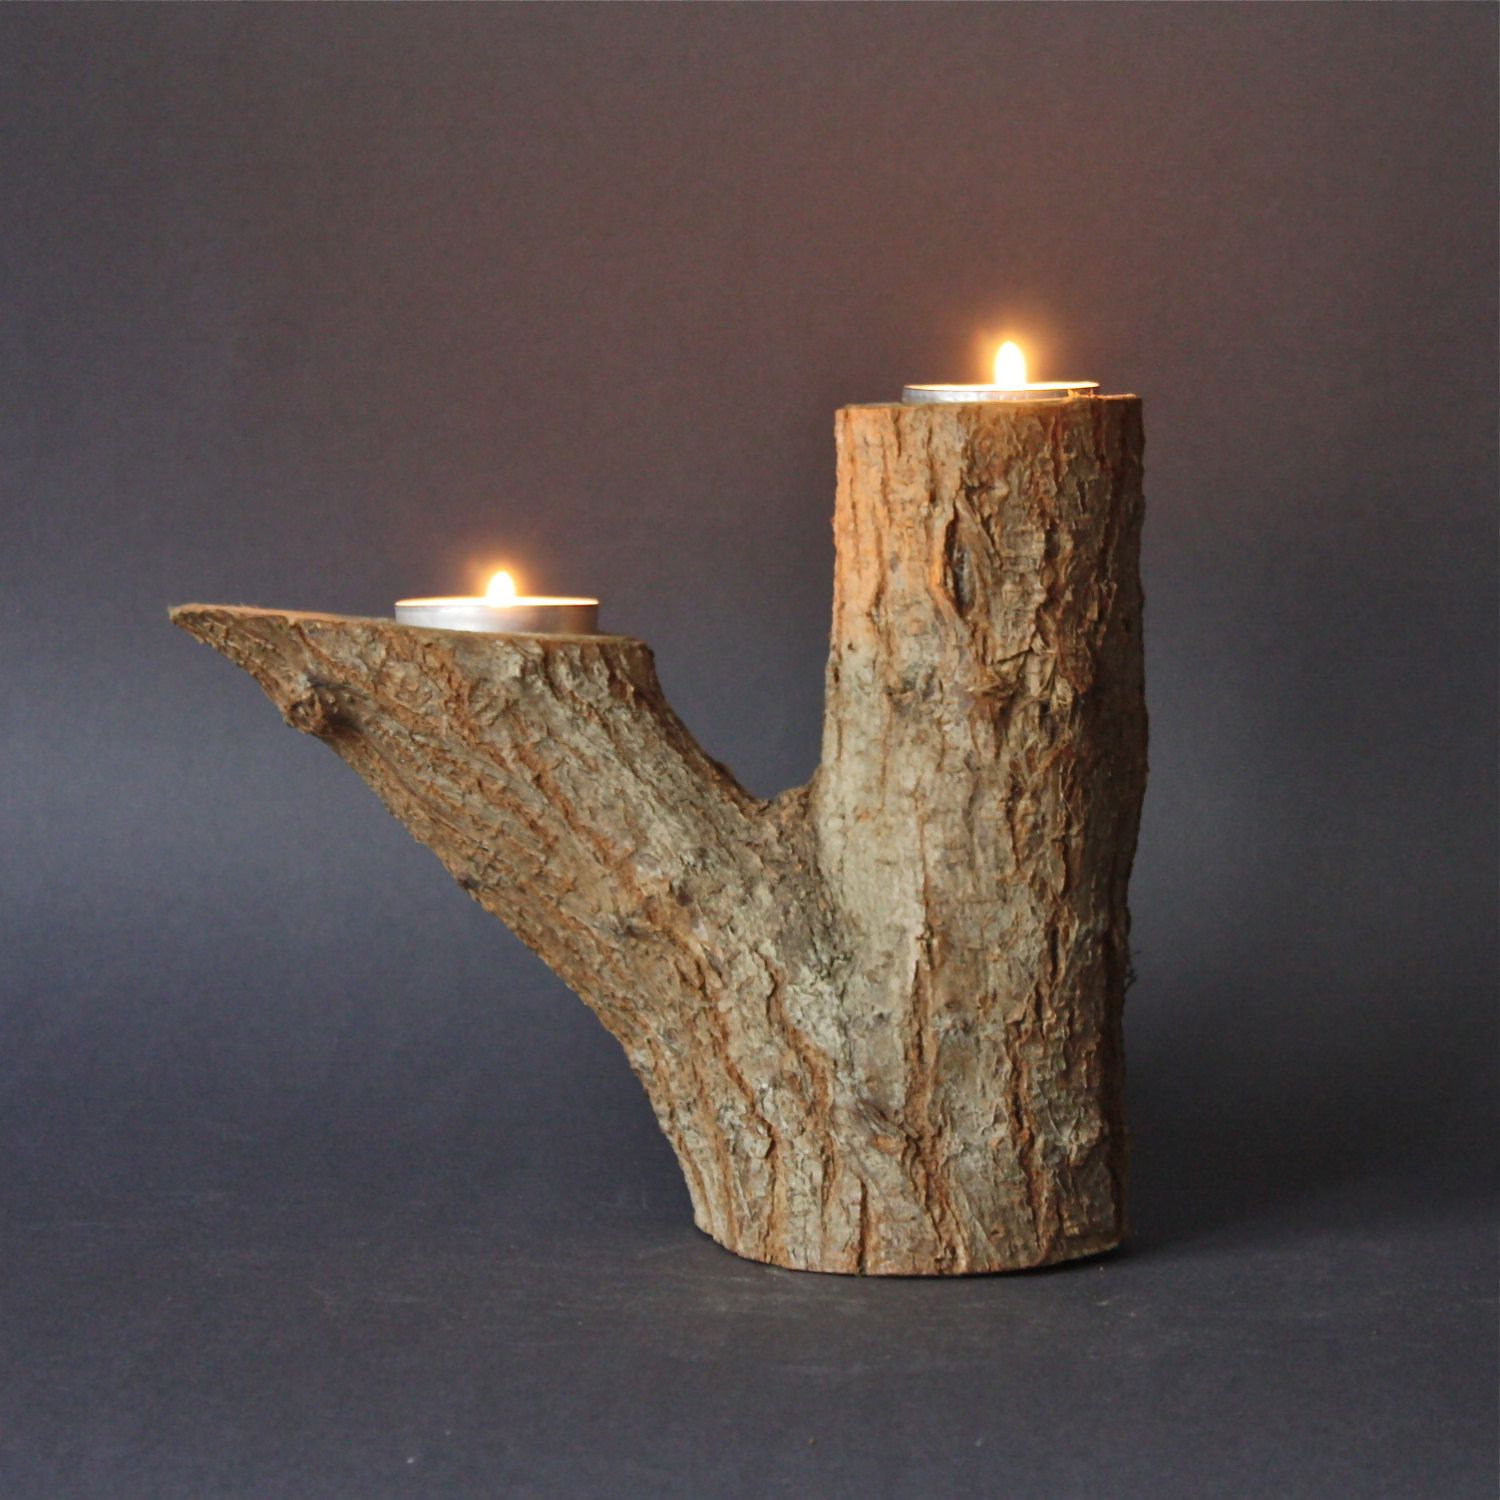 Rustic Wooden Tea Light Holder Free Shipping: Vintage Tree Branch Natural Wood Double Candle Holder